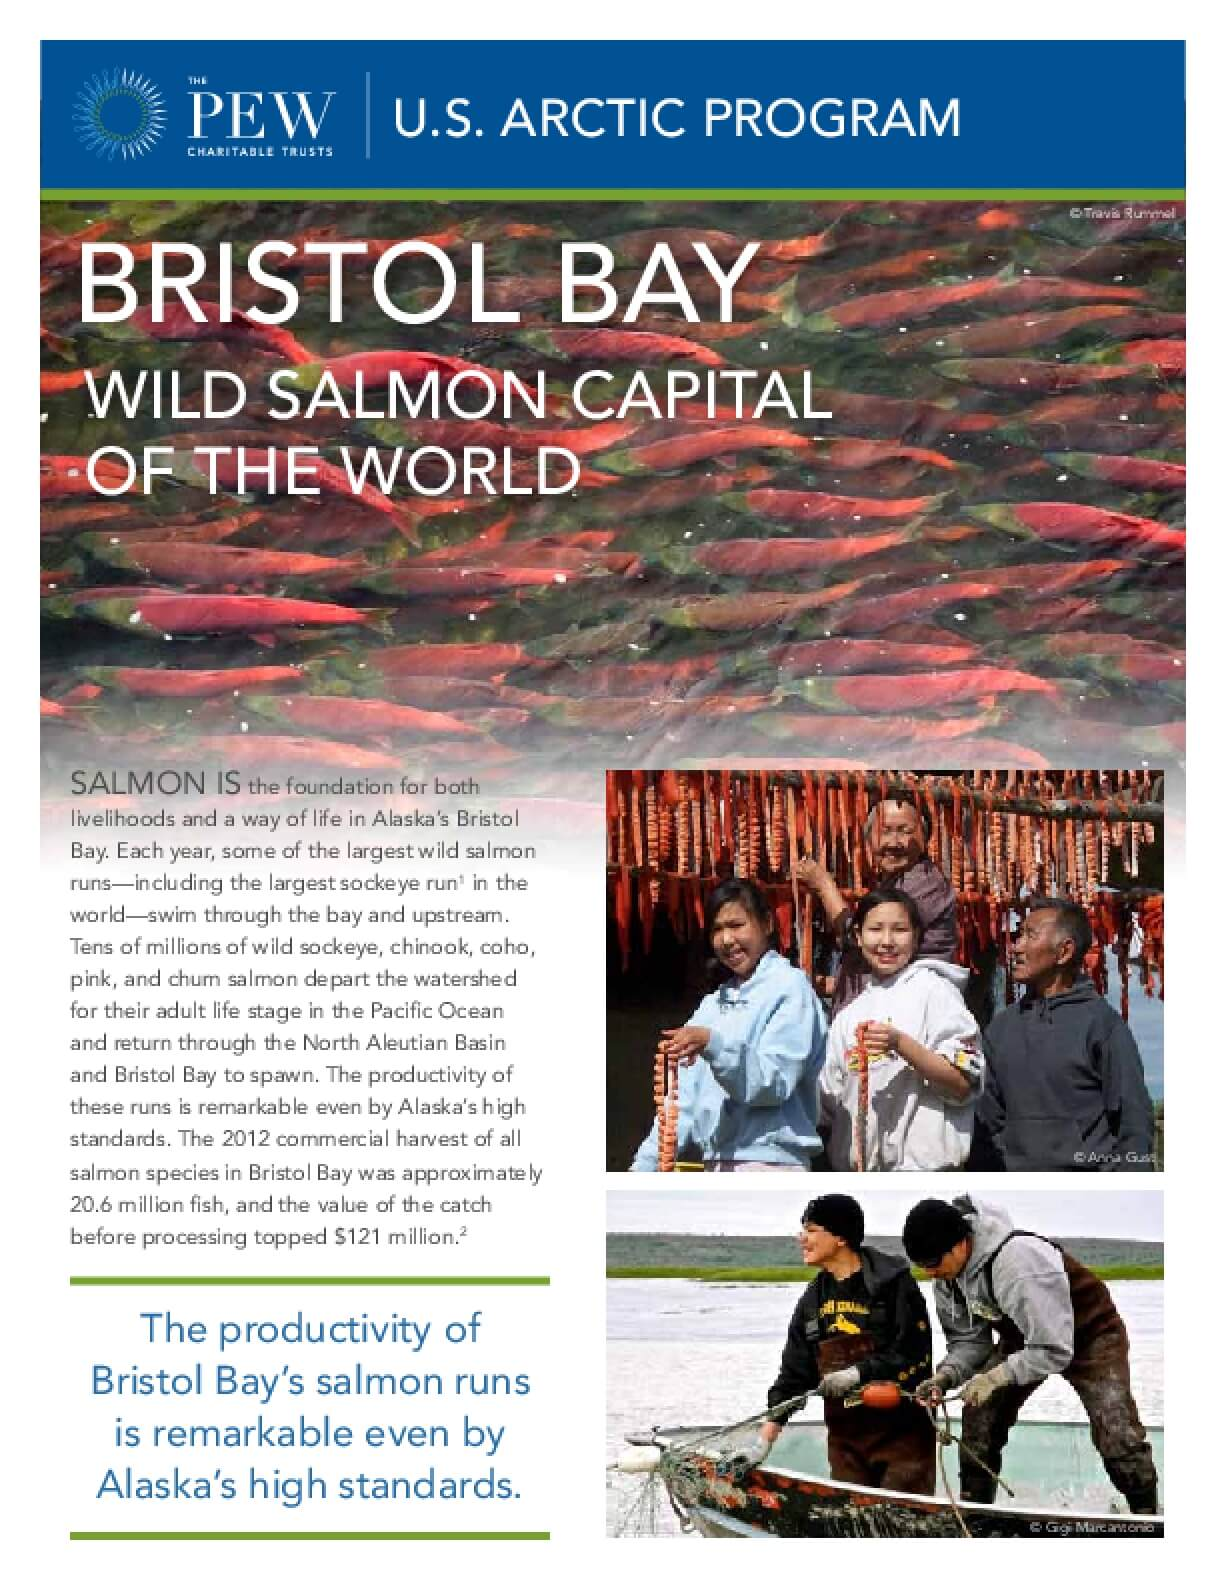 Bristol Bay: Wild Salmon Capital of the World